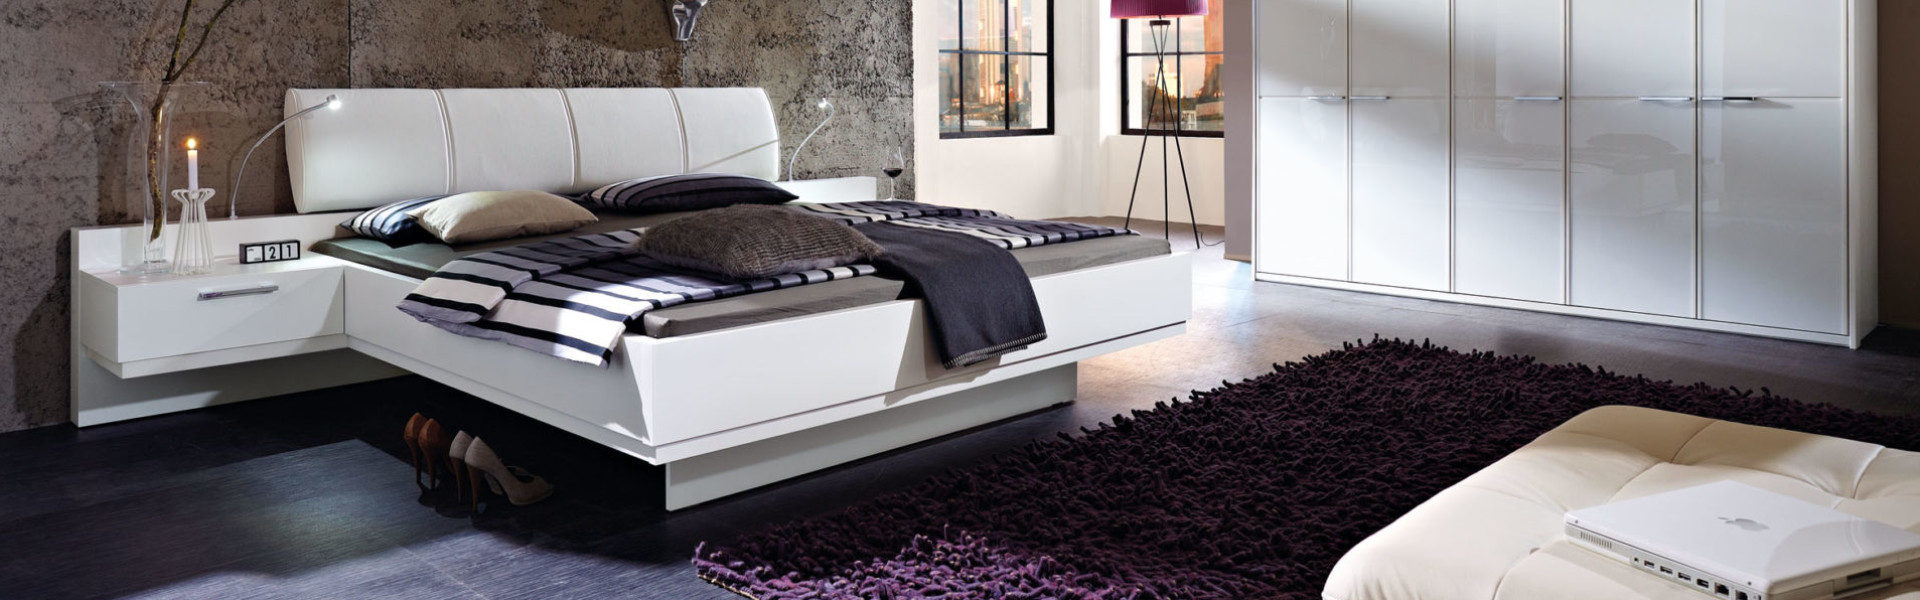 ihr fachmann f r betten m bel schlafzimmer m belhaus. Black Bedroom Furniture Sets. Home Design Ideas